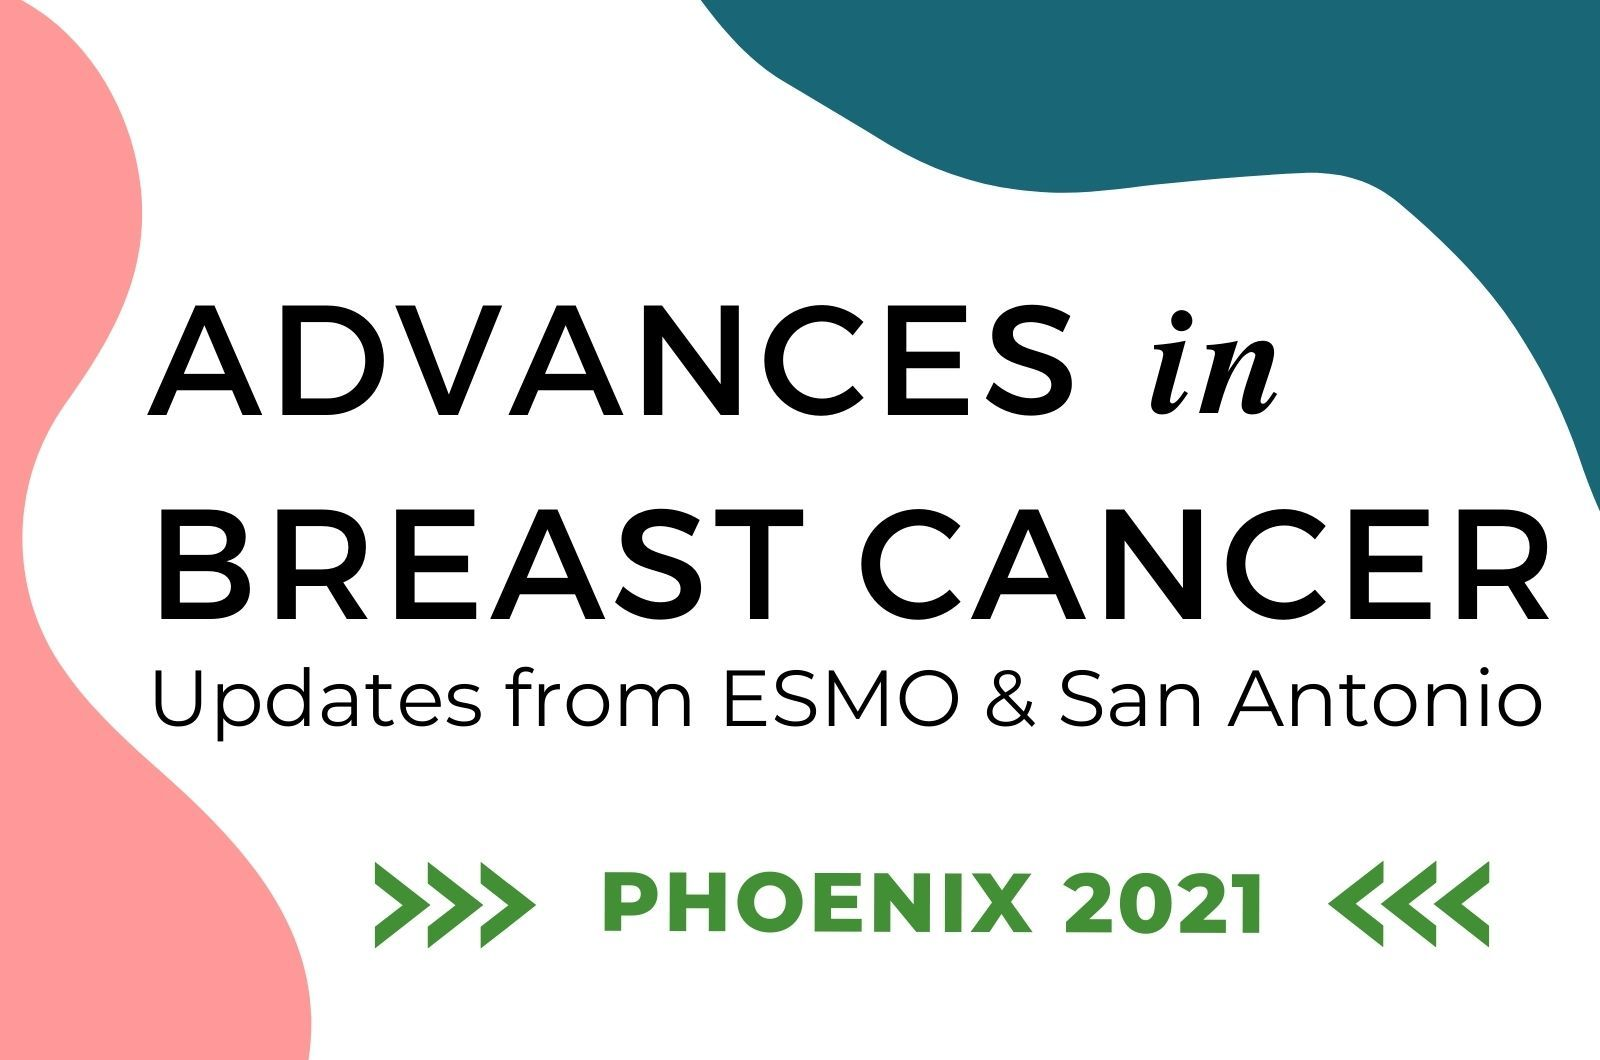 Advances in Breast Cancer Phoenix